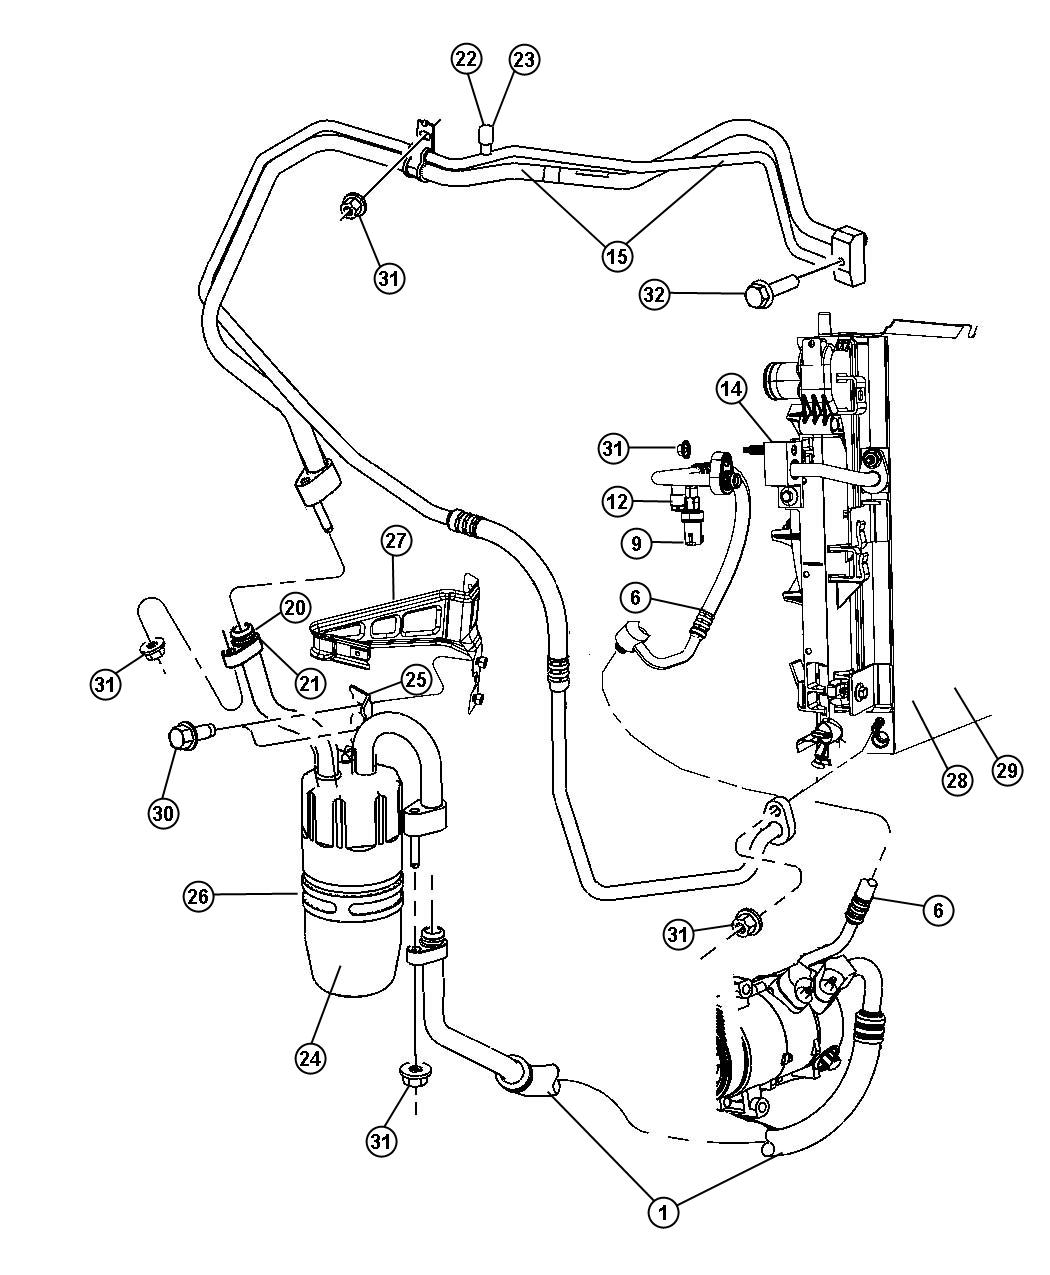 Chrysler Sebring Line A C Discharge Air Plumbing Conditioning